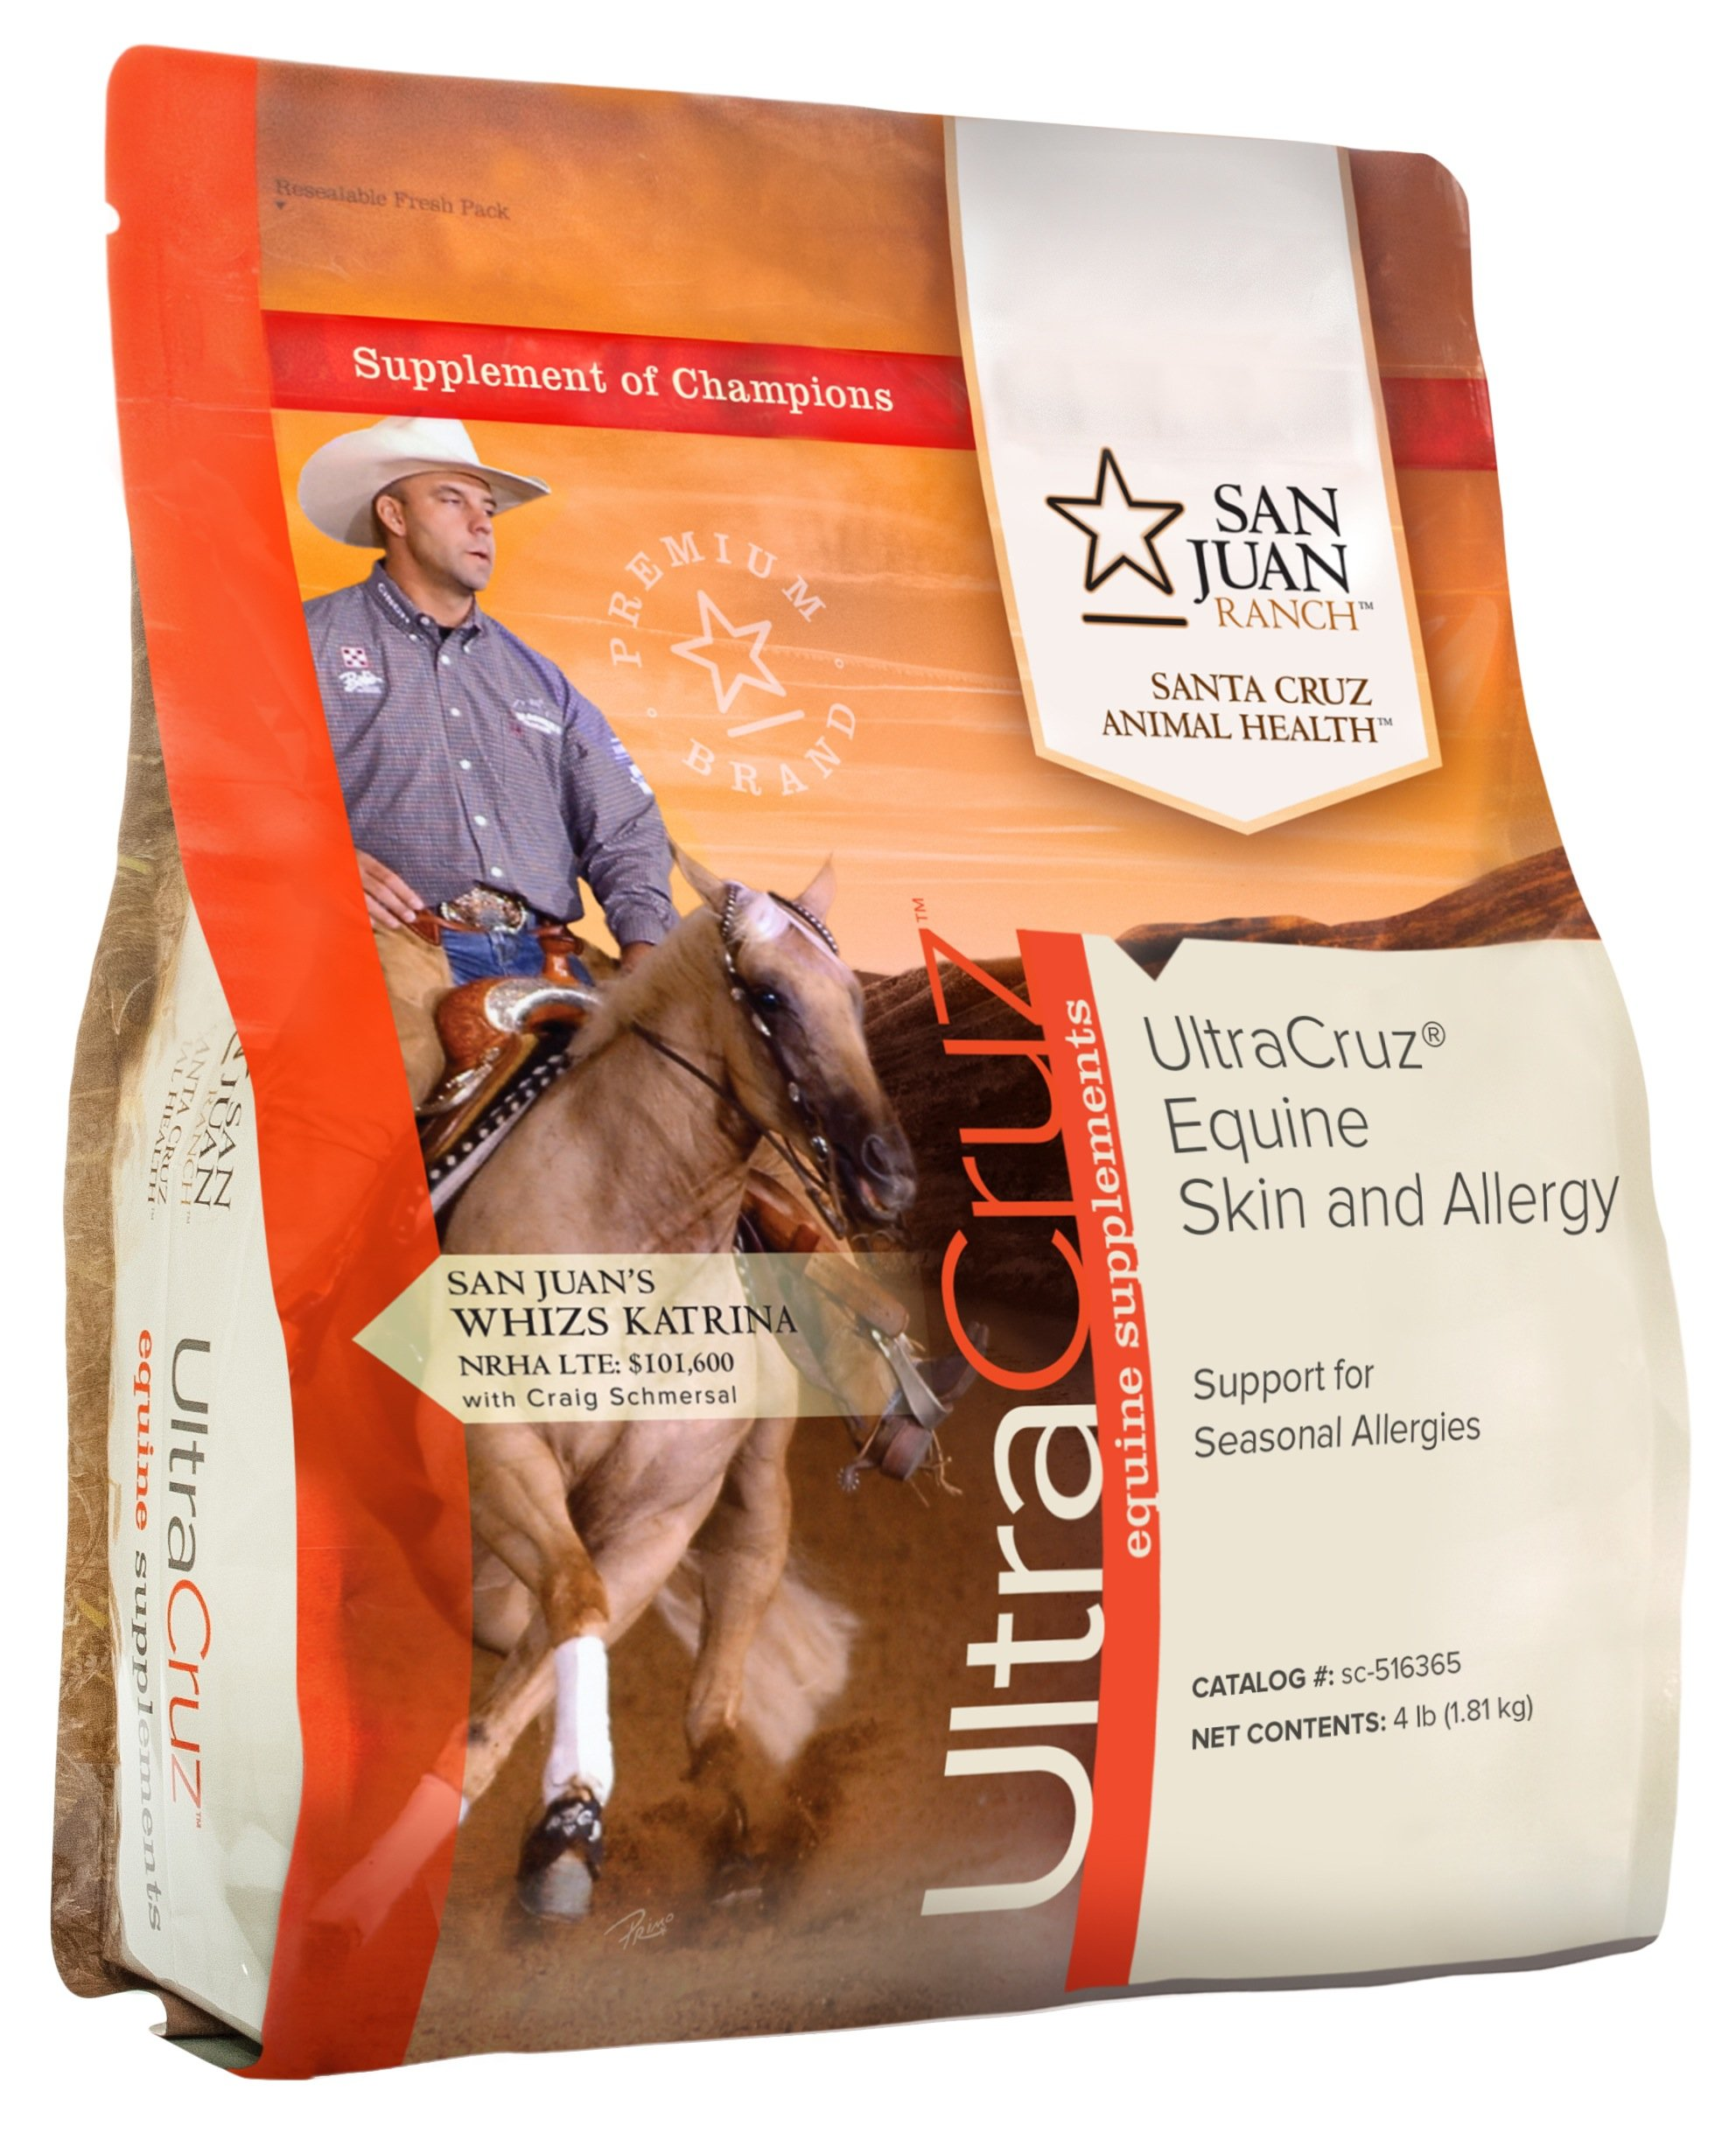 UltraCruz Equine Skin and Allergy Supplement for Horses, 4 lb, Pellet, (31 Day Supply) by UltraCruz